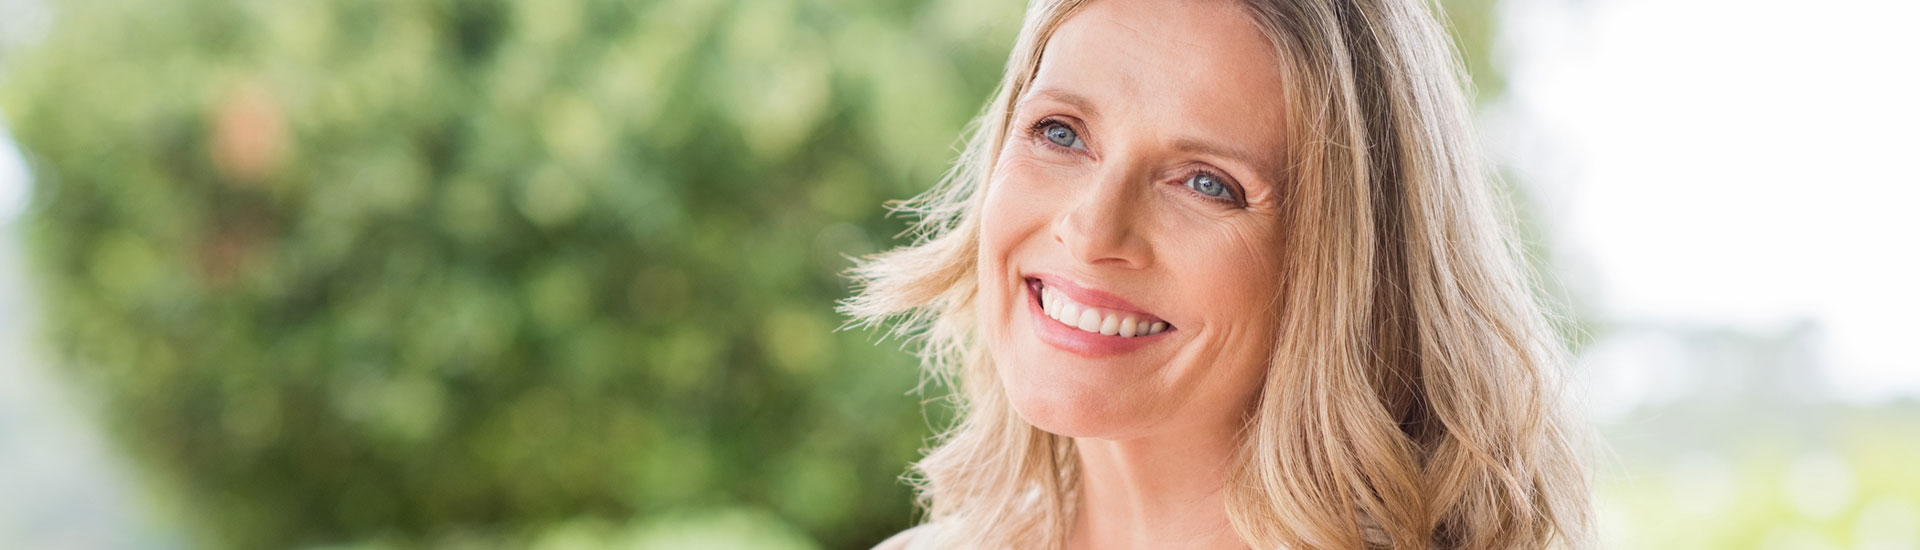 Smiling Happy Mature Woman